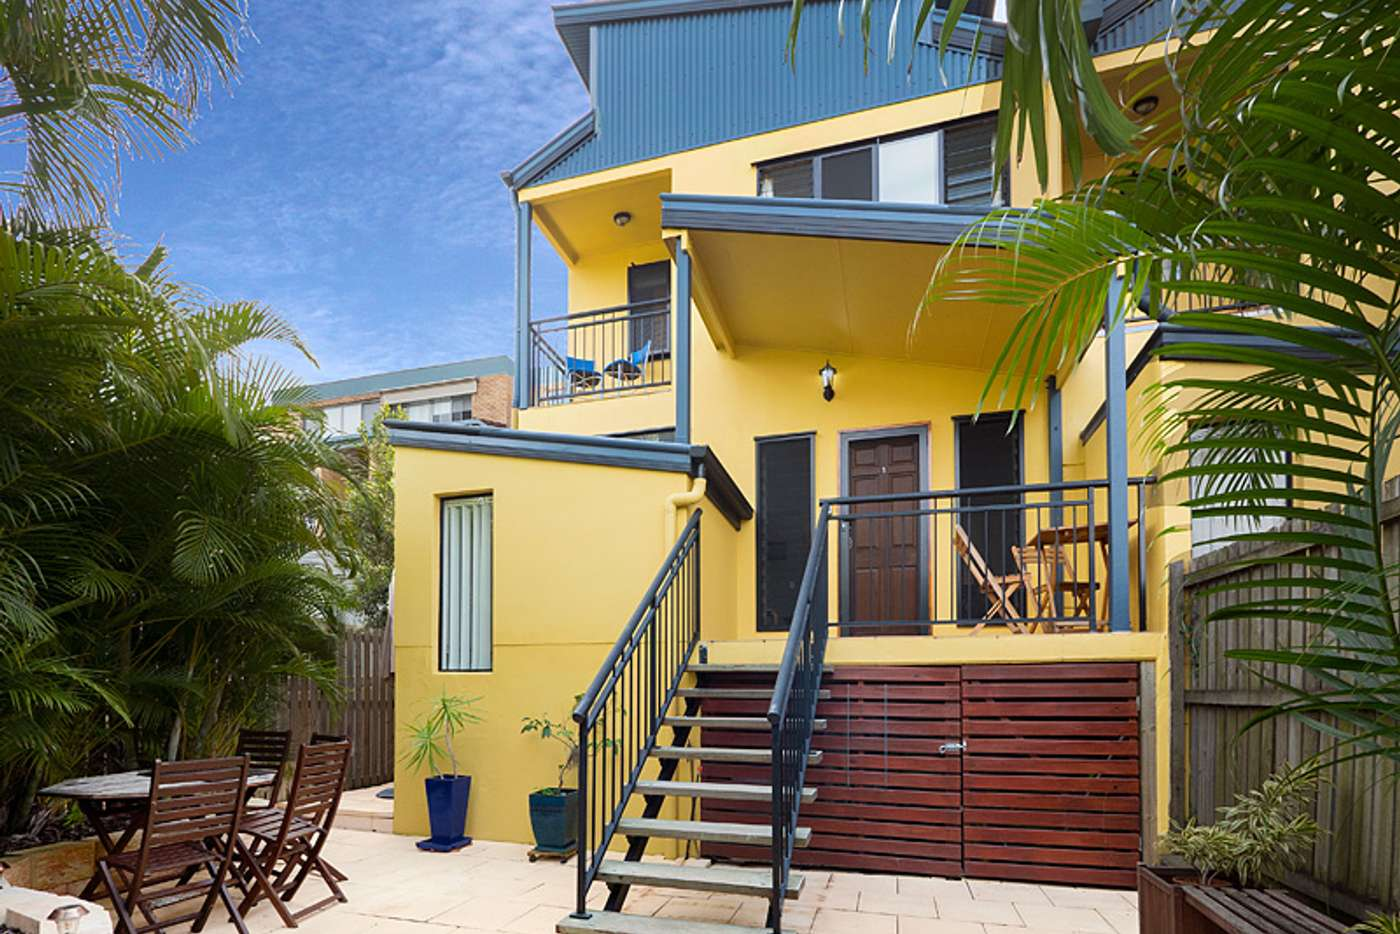 Main view of Homely townhouse listing, 1/11 Burt St, Auchenflower QLD 4066